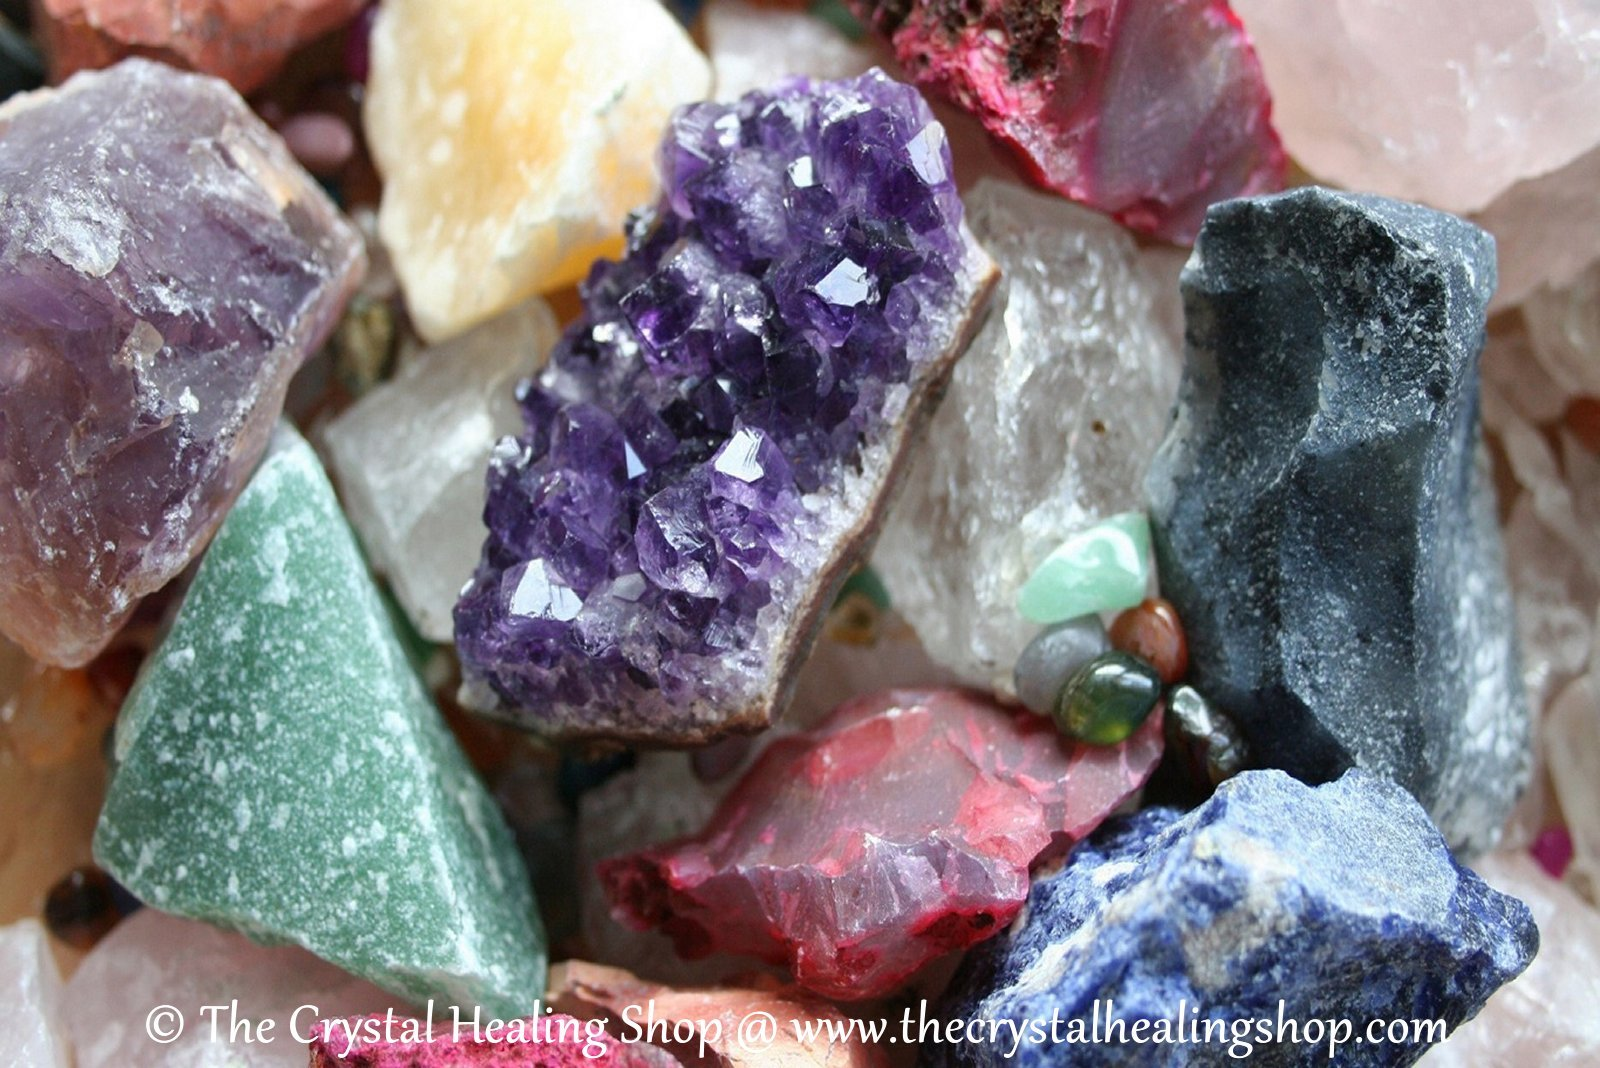 Rough Crystals @ The Crystal Healing Shop